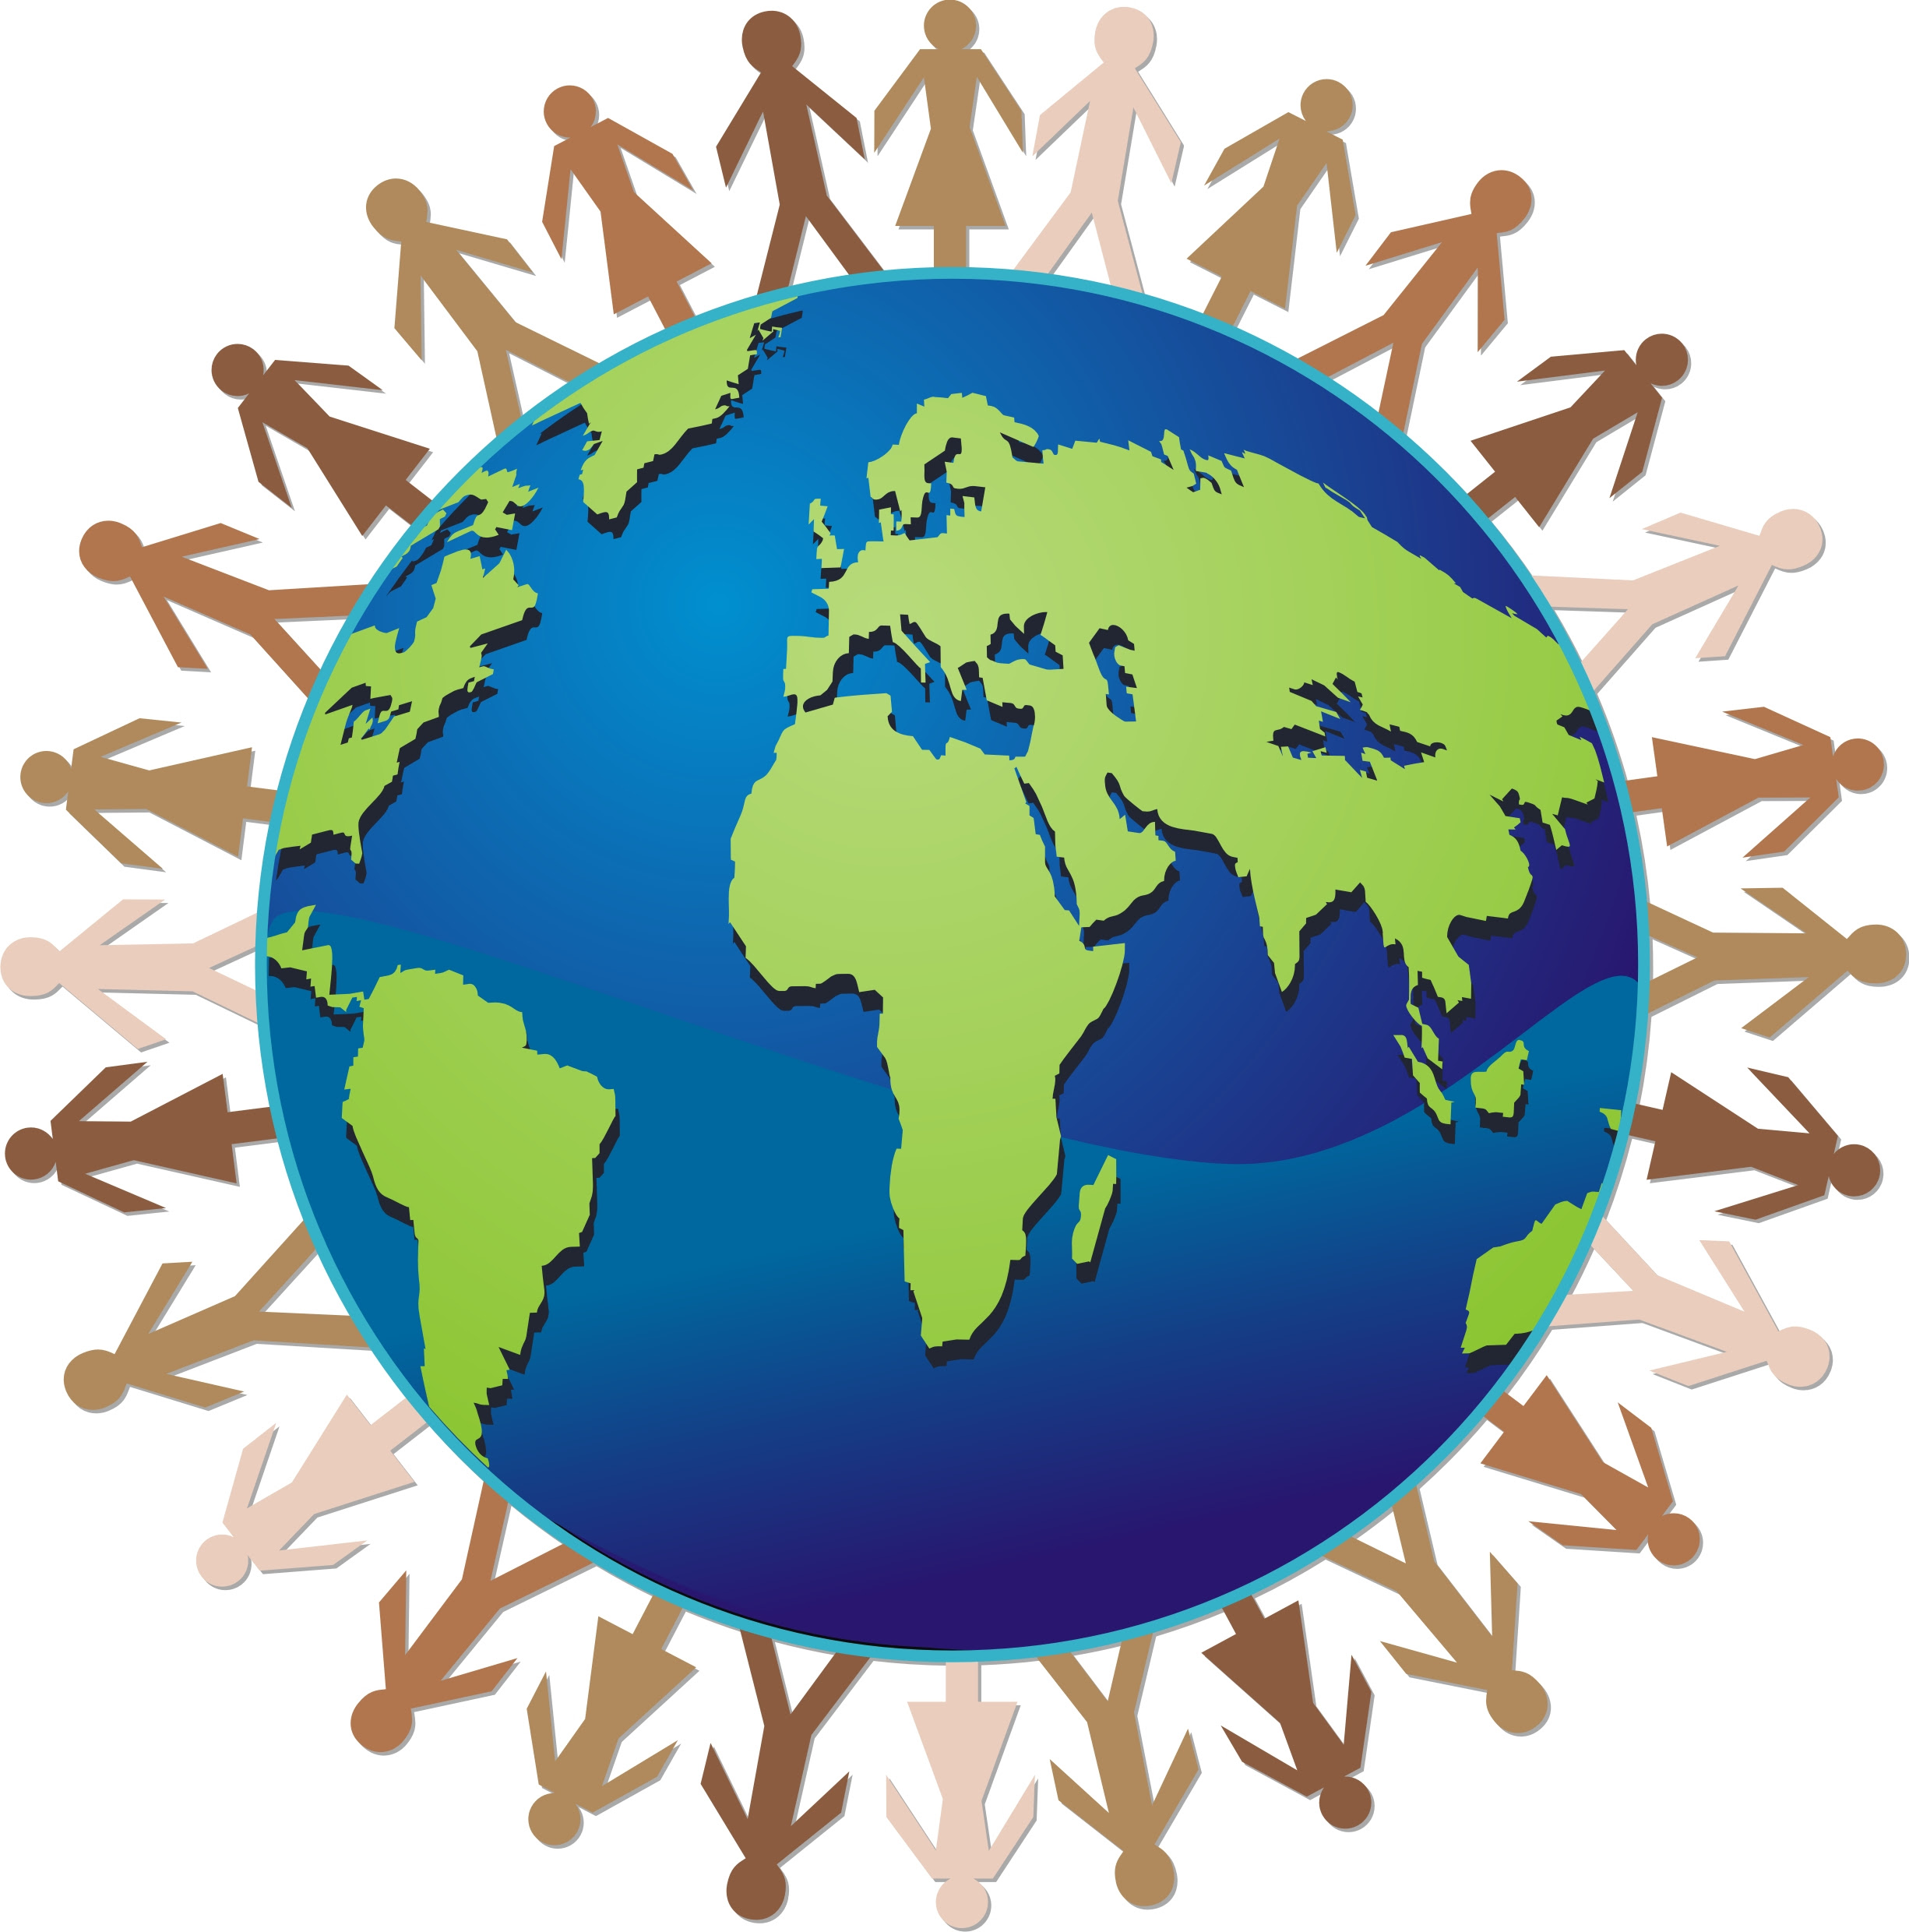 diversity in the world essay Admissions essays blog: through our very own editors and guest writers, this blog will discuss the inside scoop on the admissions process of various schools and programs.